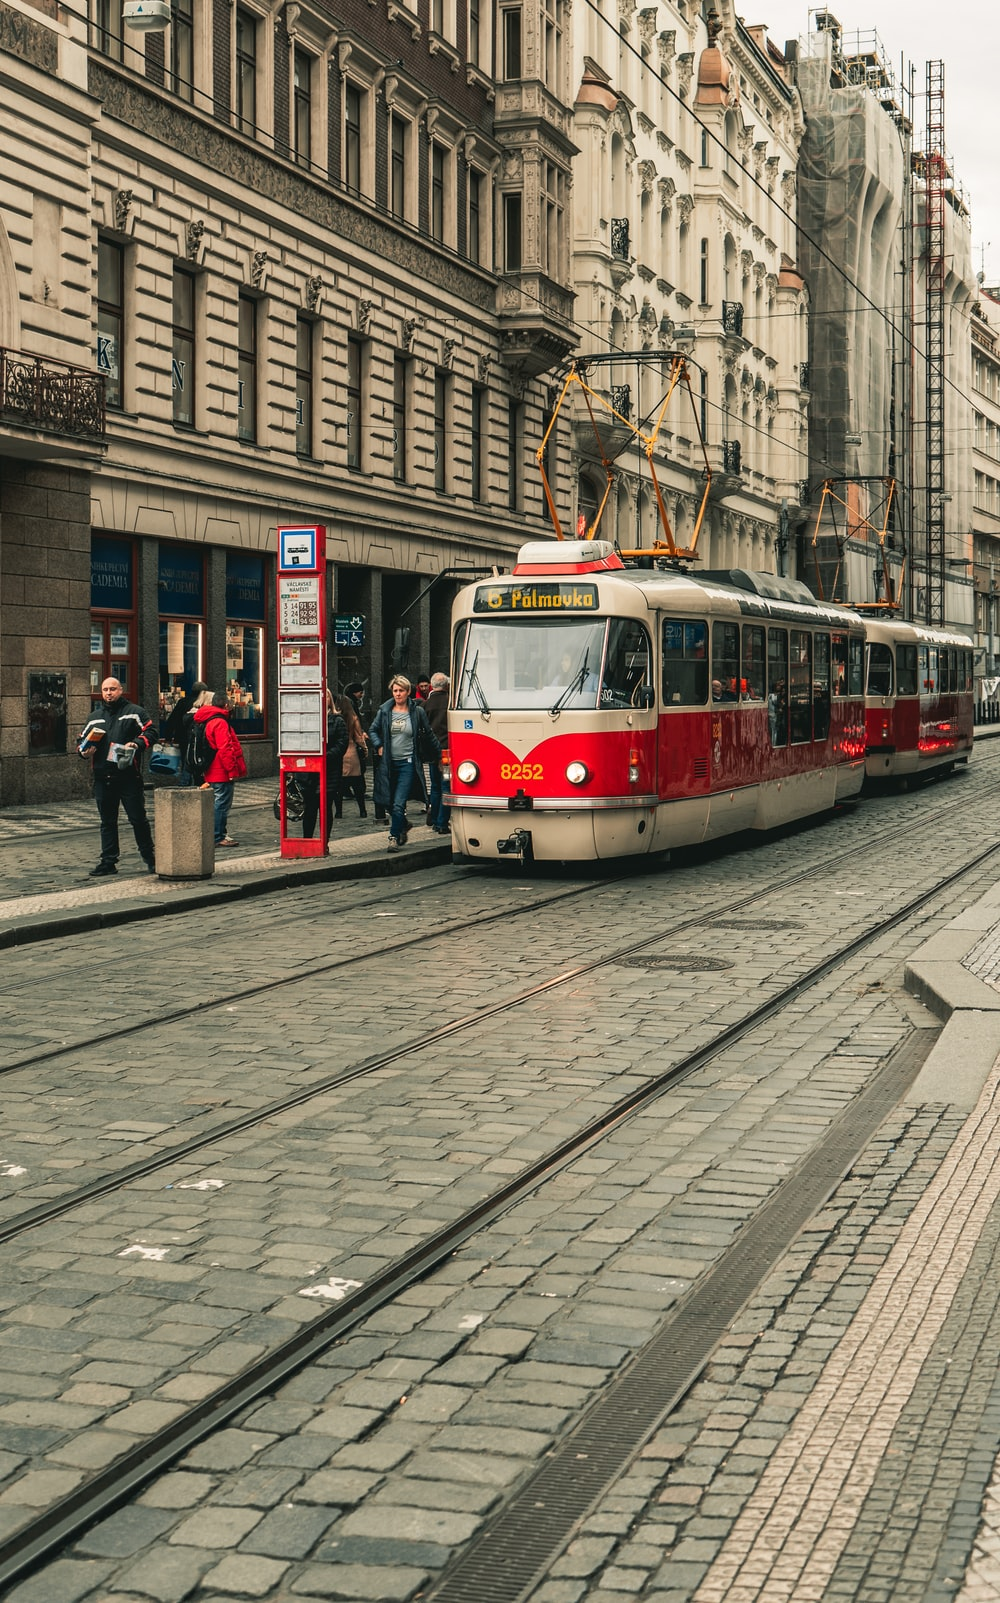 red and white tram on the street during daytime